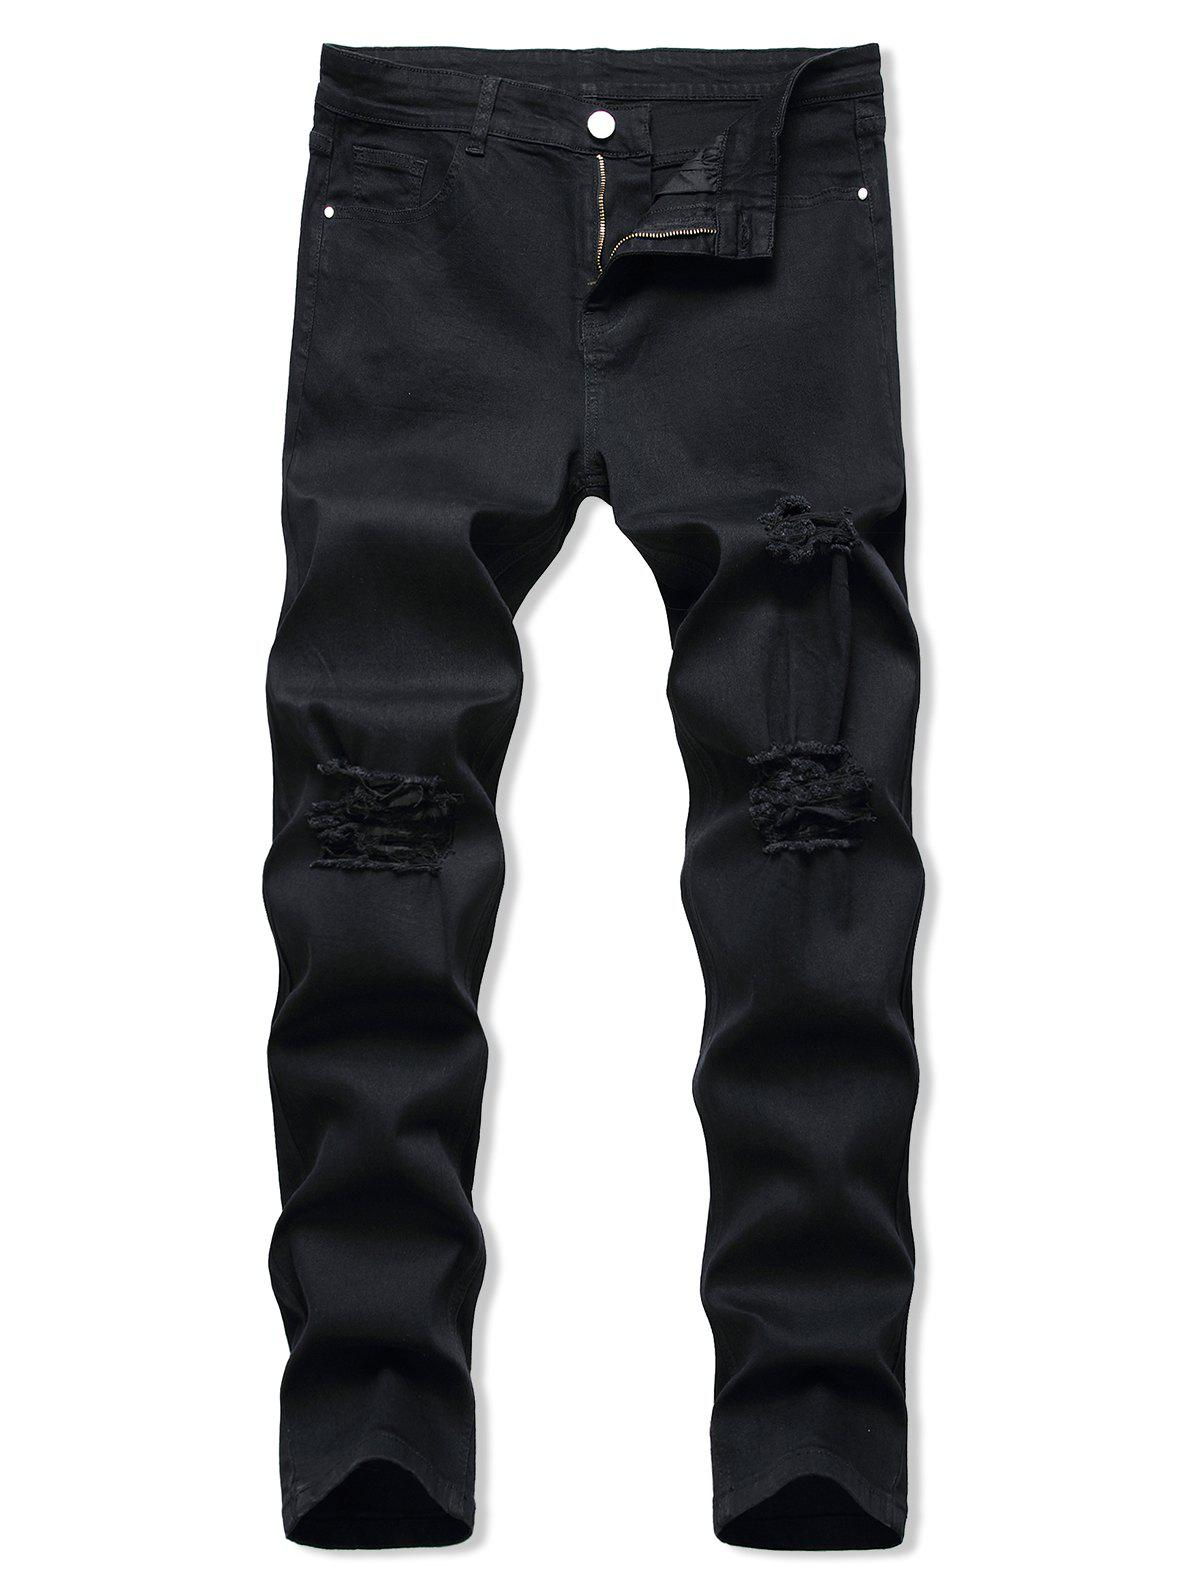 Ripped Zipper Fly Tapered Jeans - BLACK 34